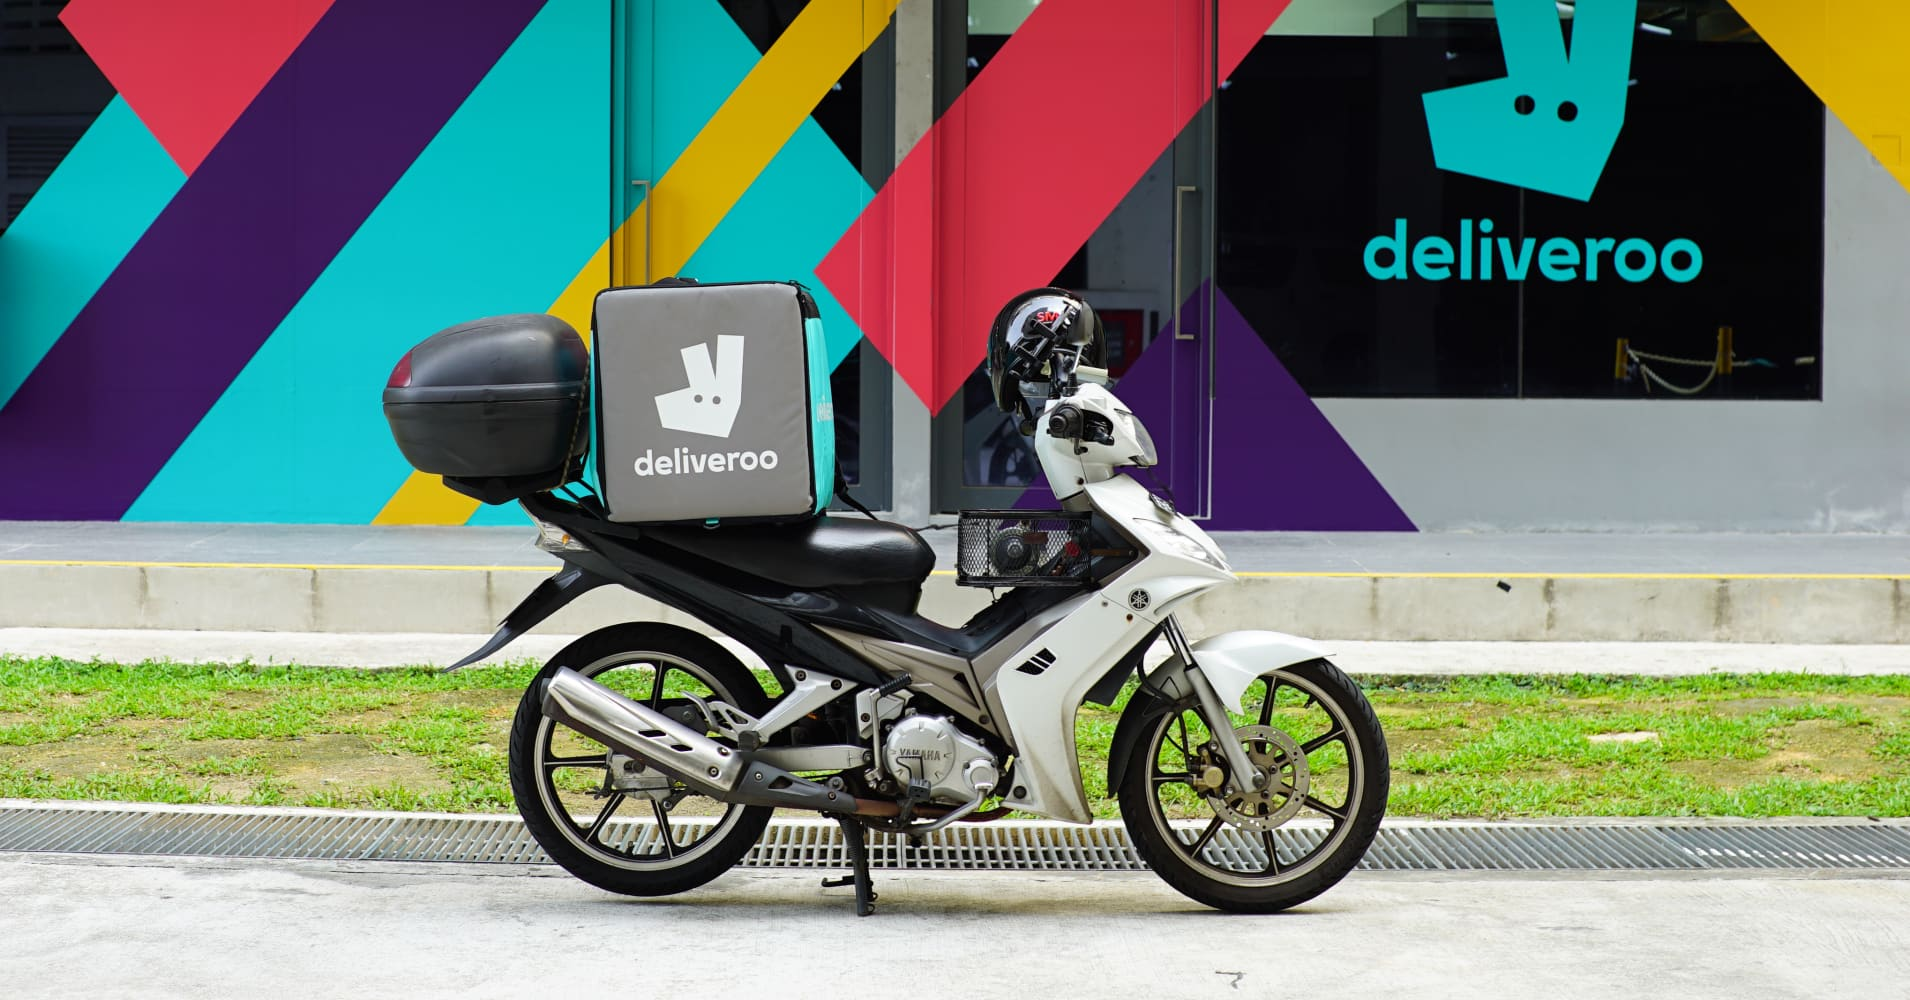 The site of Deliveroo Editions 2 in Lavender, Singapore